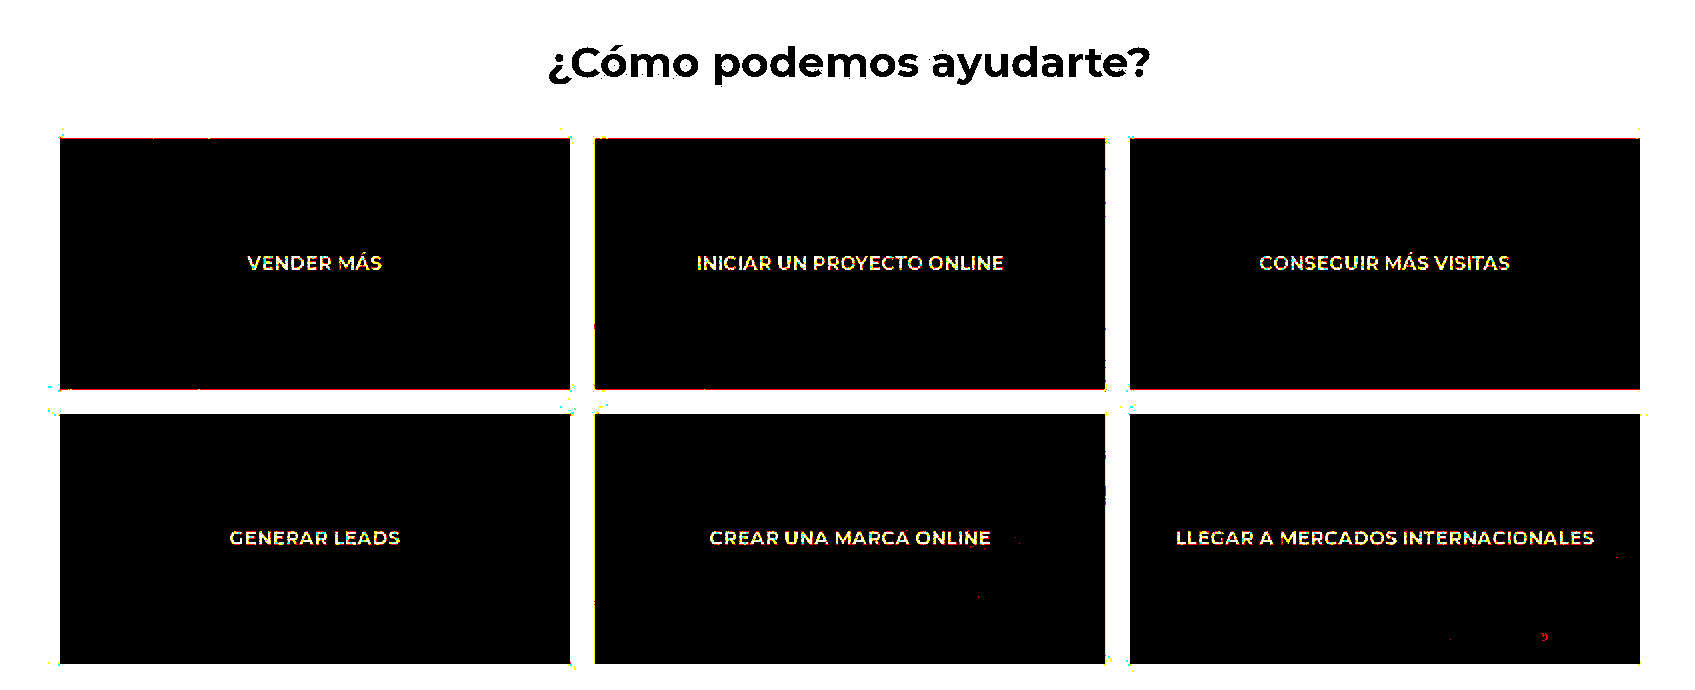 Marketing Digital Lima Online  en Lima,  en Madrid, en Cusco, en Caracas, en Mallorca, en Palma de Mallorca, en